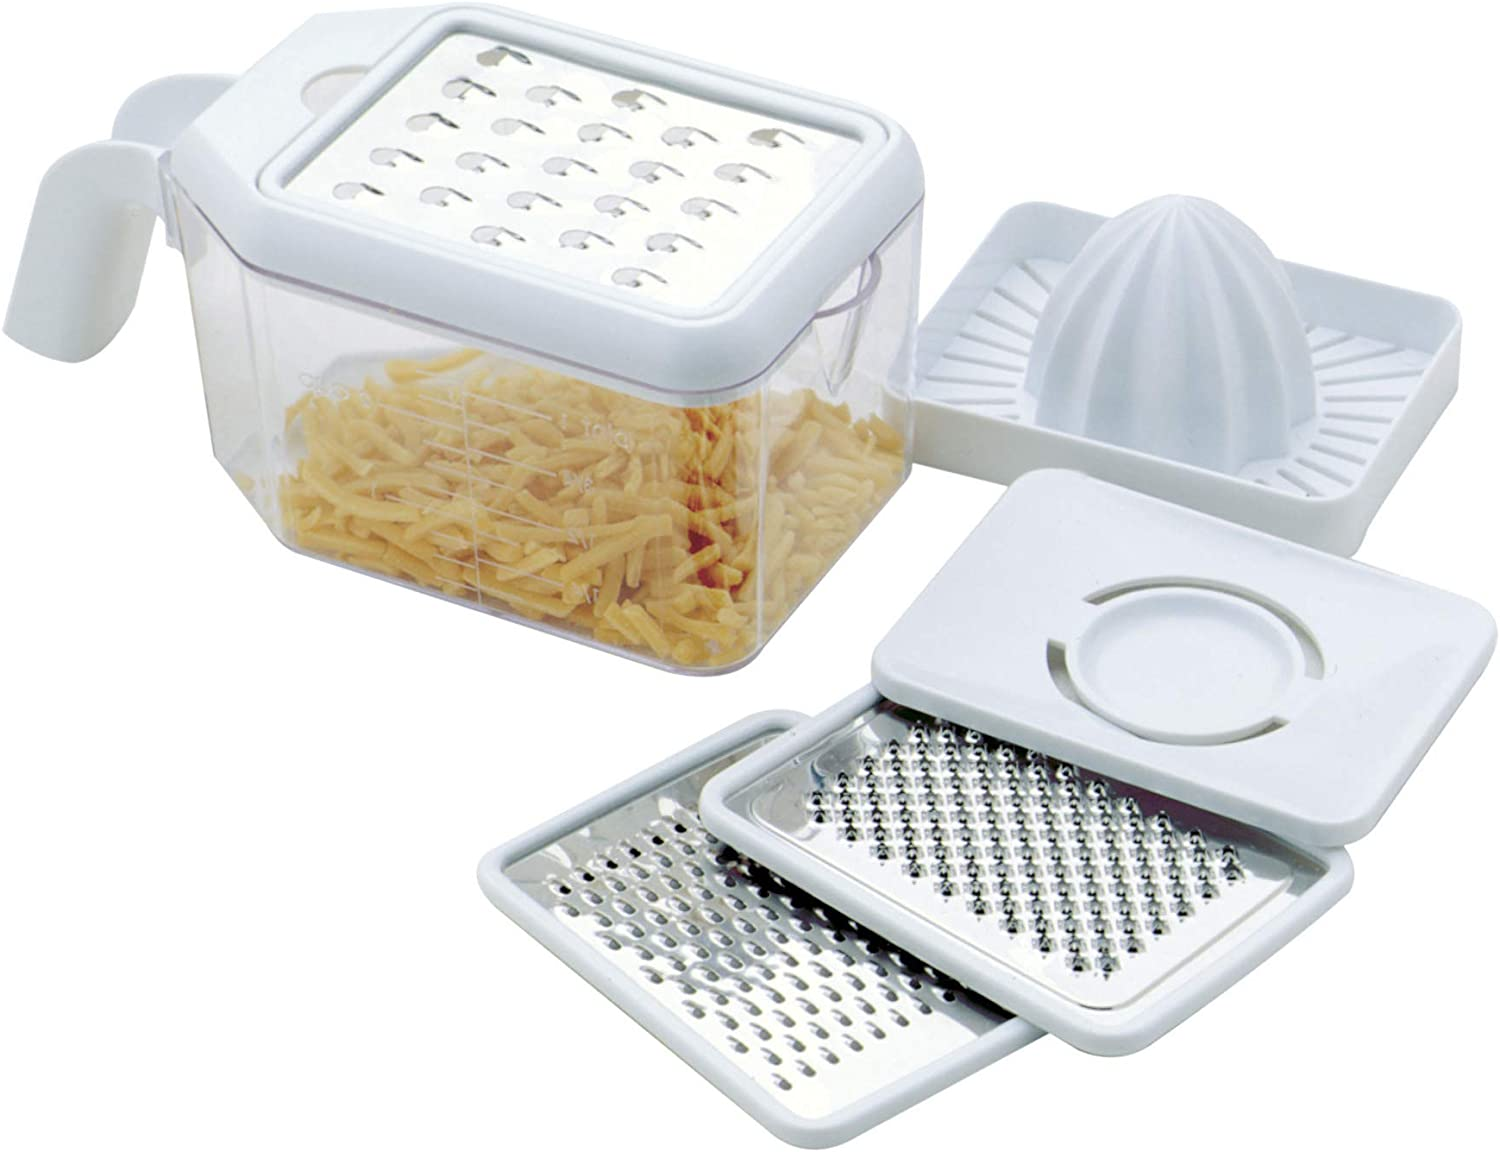 Norpro Multi Grater with Juicer, One Size, As Shown